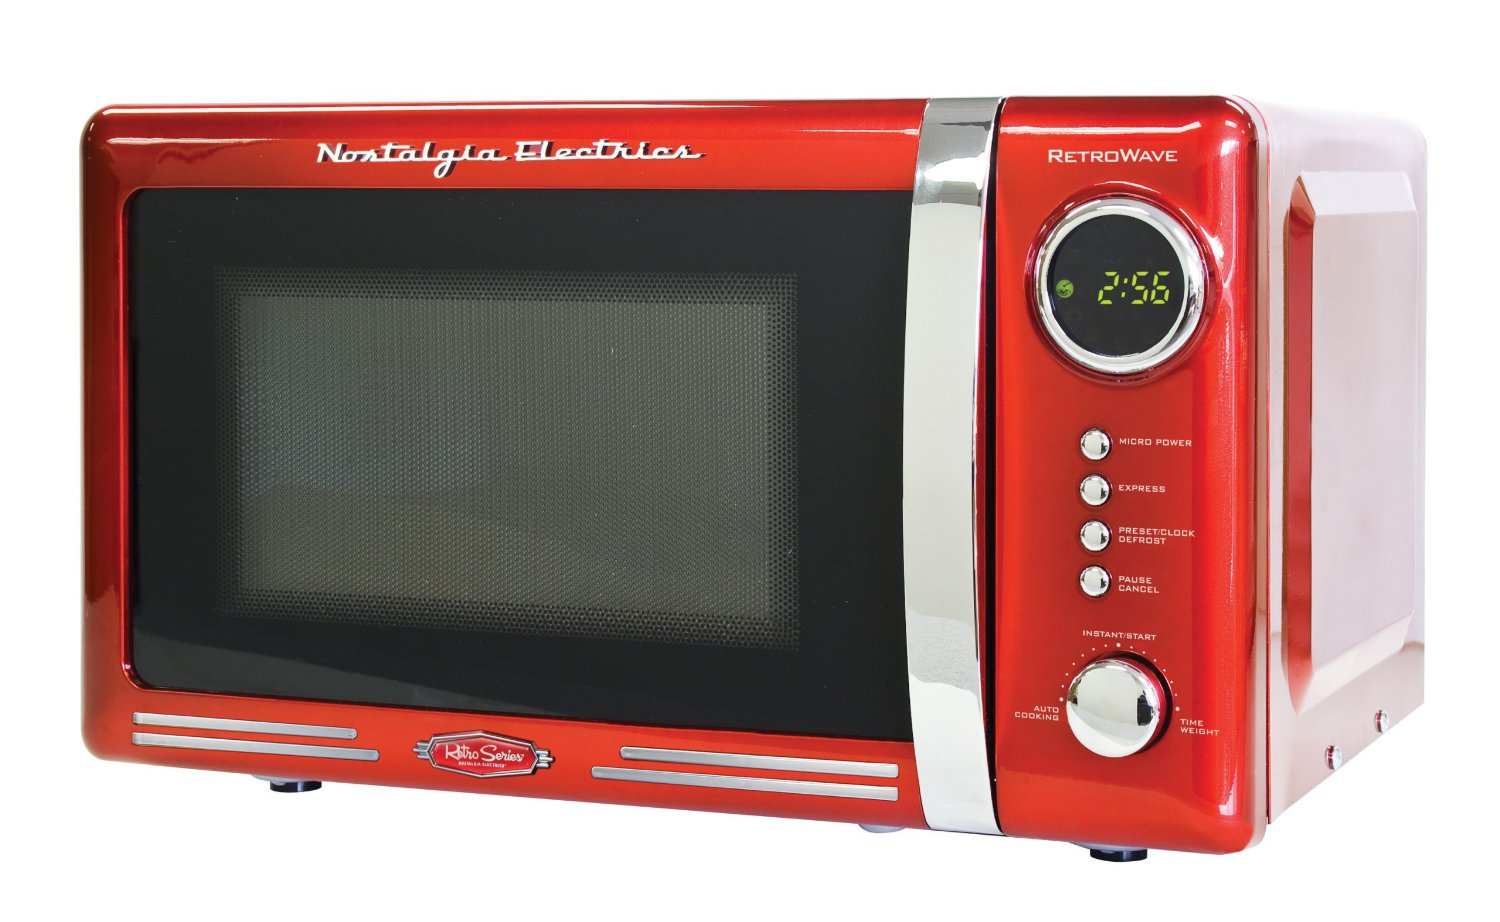 redmicrowave